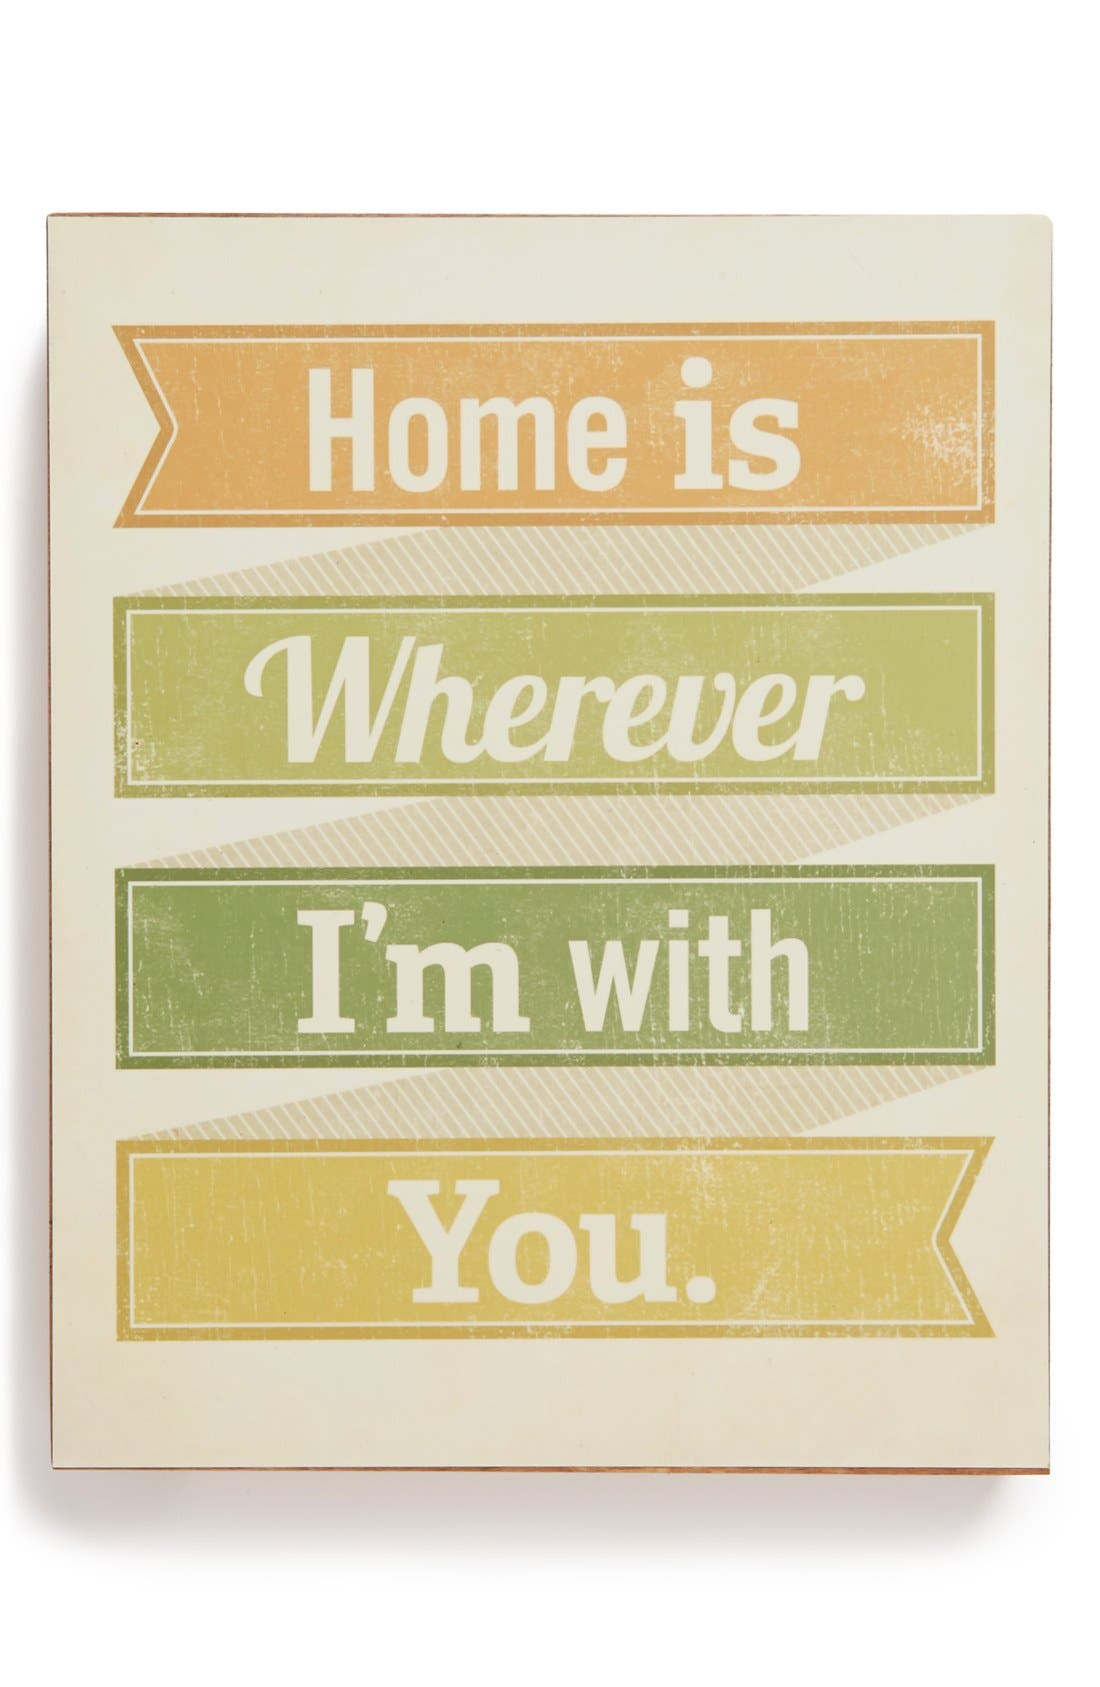 Alternate Image 1 Selected - Lucius Designs 'Home Is Wherever I'm with You' Wood Block Art